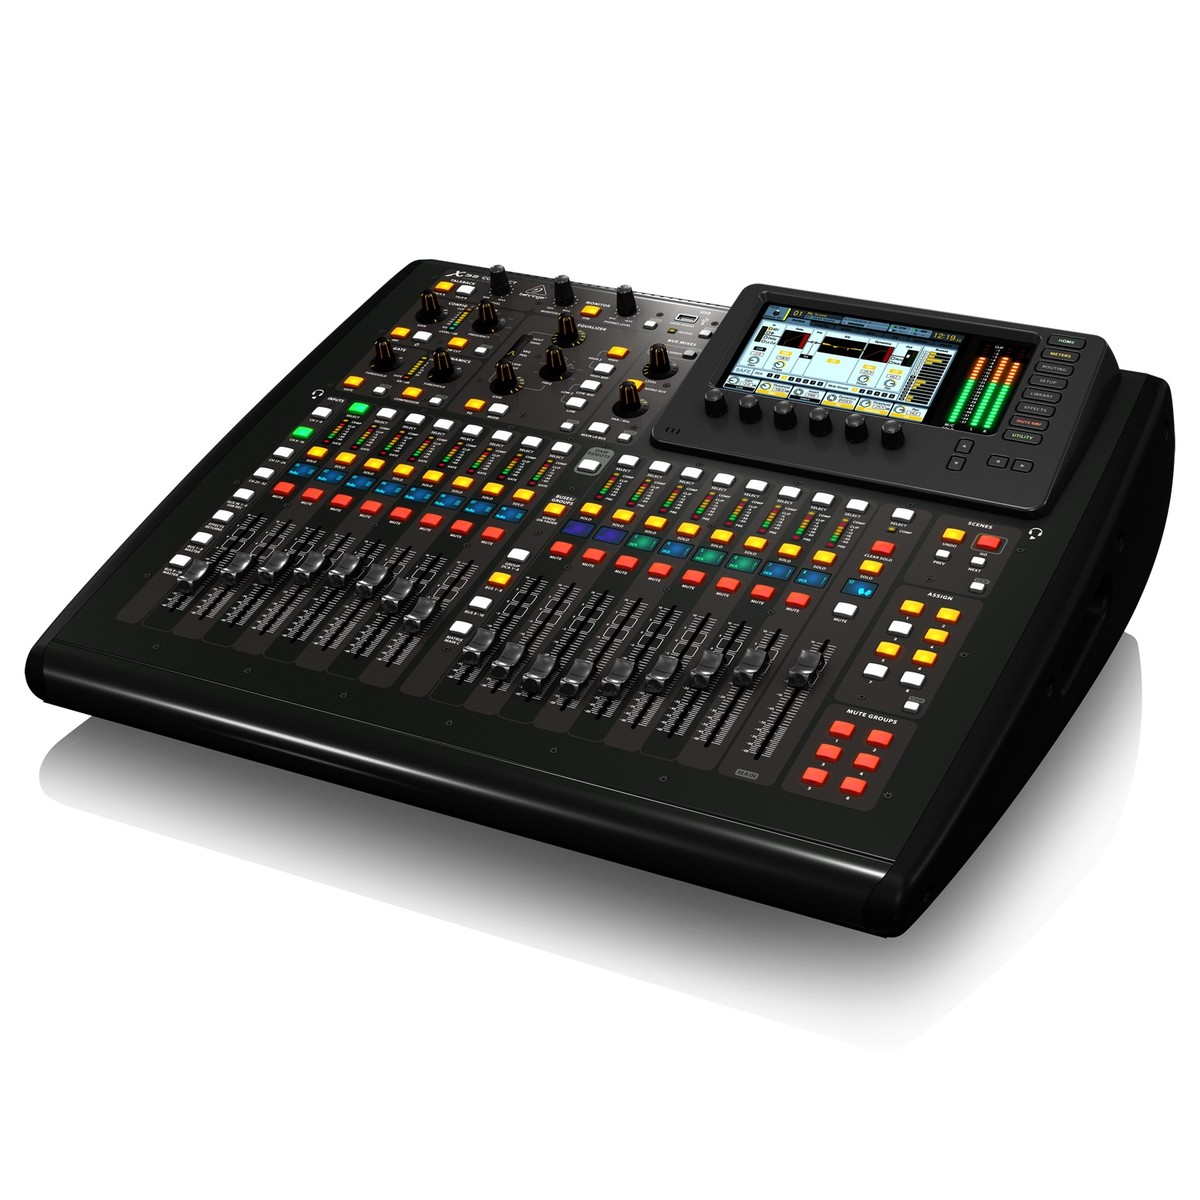 behringer x32 compact digital mixing console box opened at gear4music. Black Bedroom Furniture Sets. Home Design Ideas